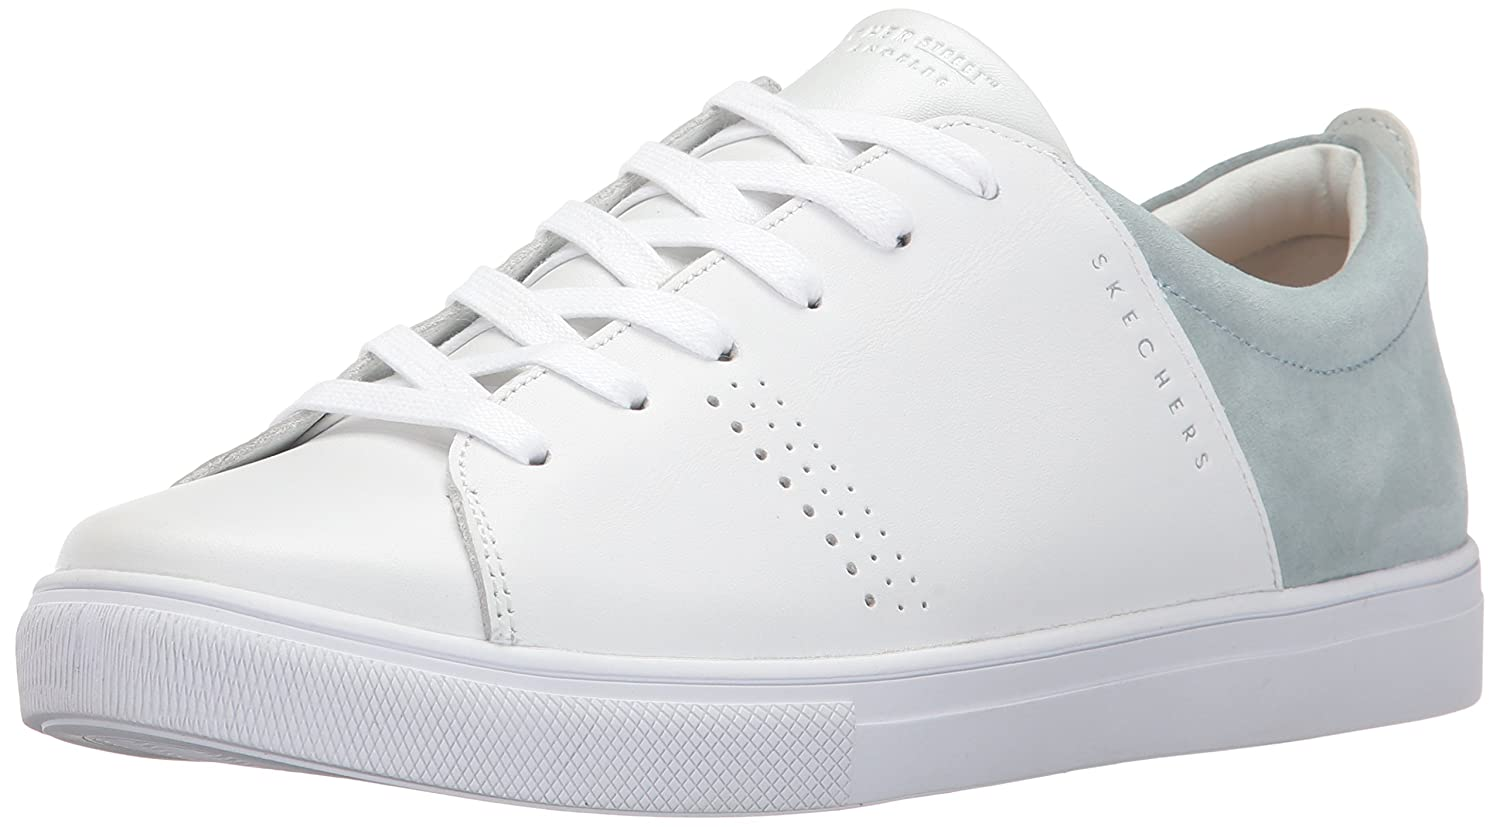 White  Grey Skechers Women's Moda - Clean Street shoes